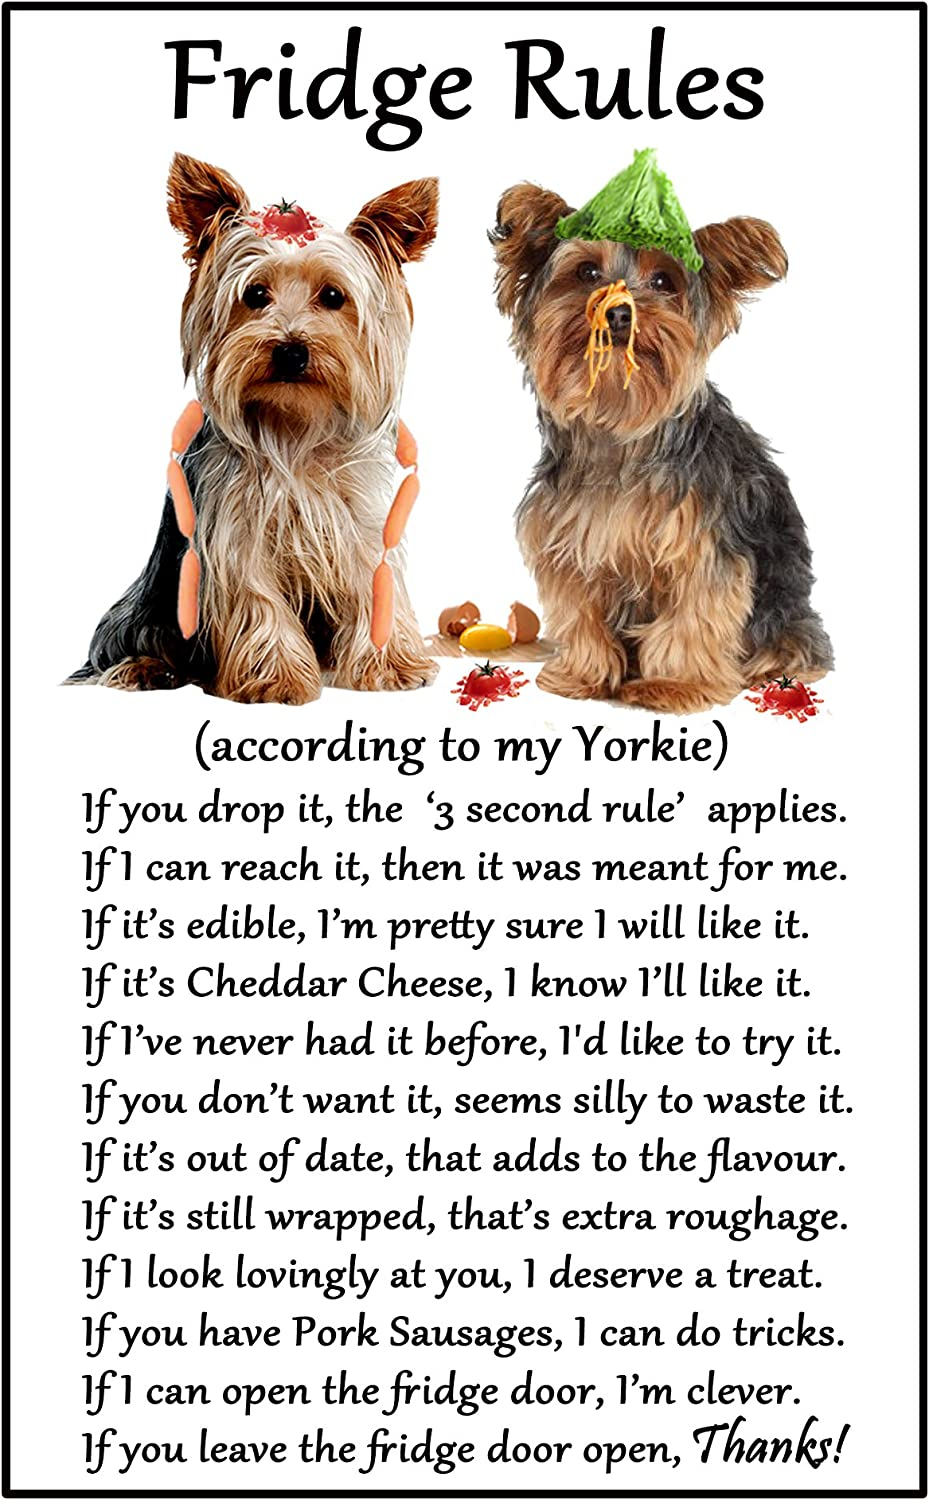 Fridge Magnets Yorkshire Terrier Yorkie Gift Fridge Rules Large Fun Flexible Size 16cms X 10 Cms Approx 6 X4 Amazon Co Uk Kitchen Home